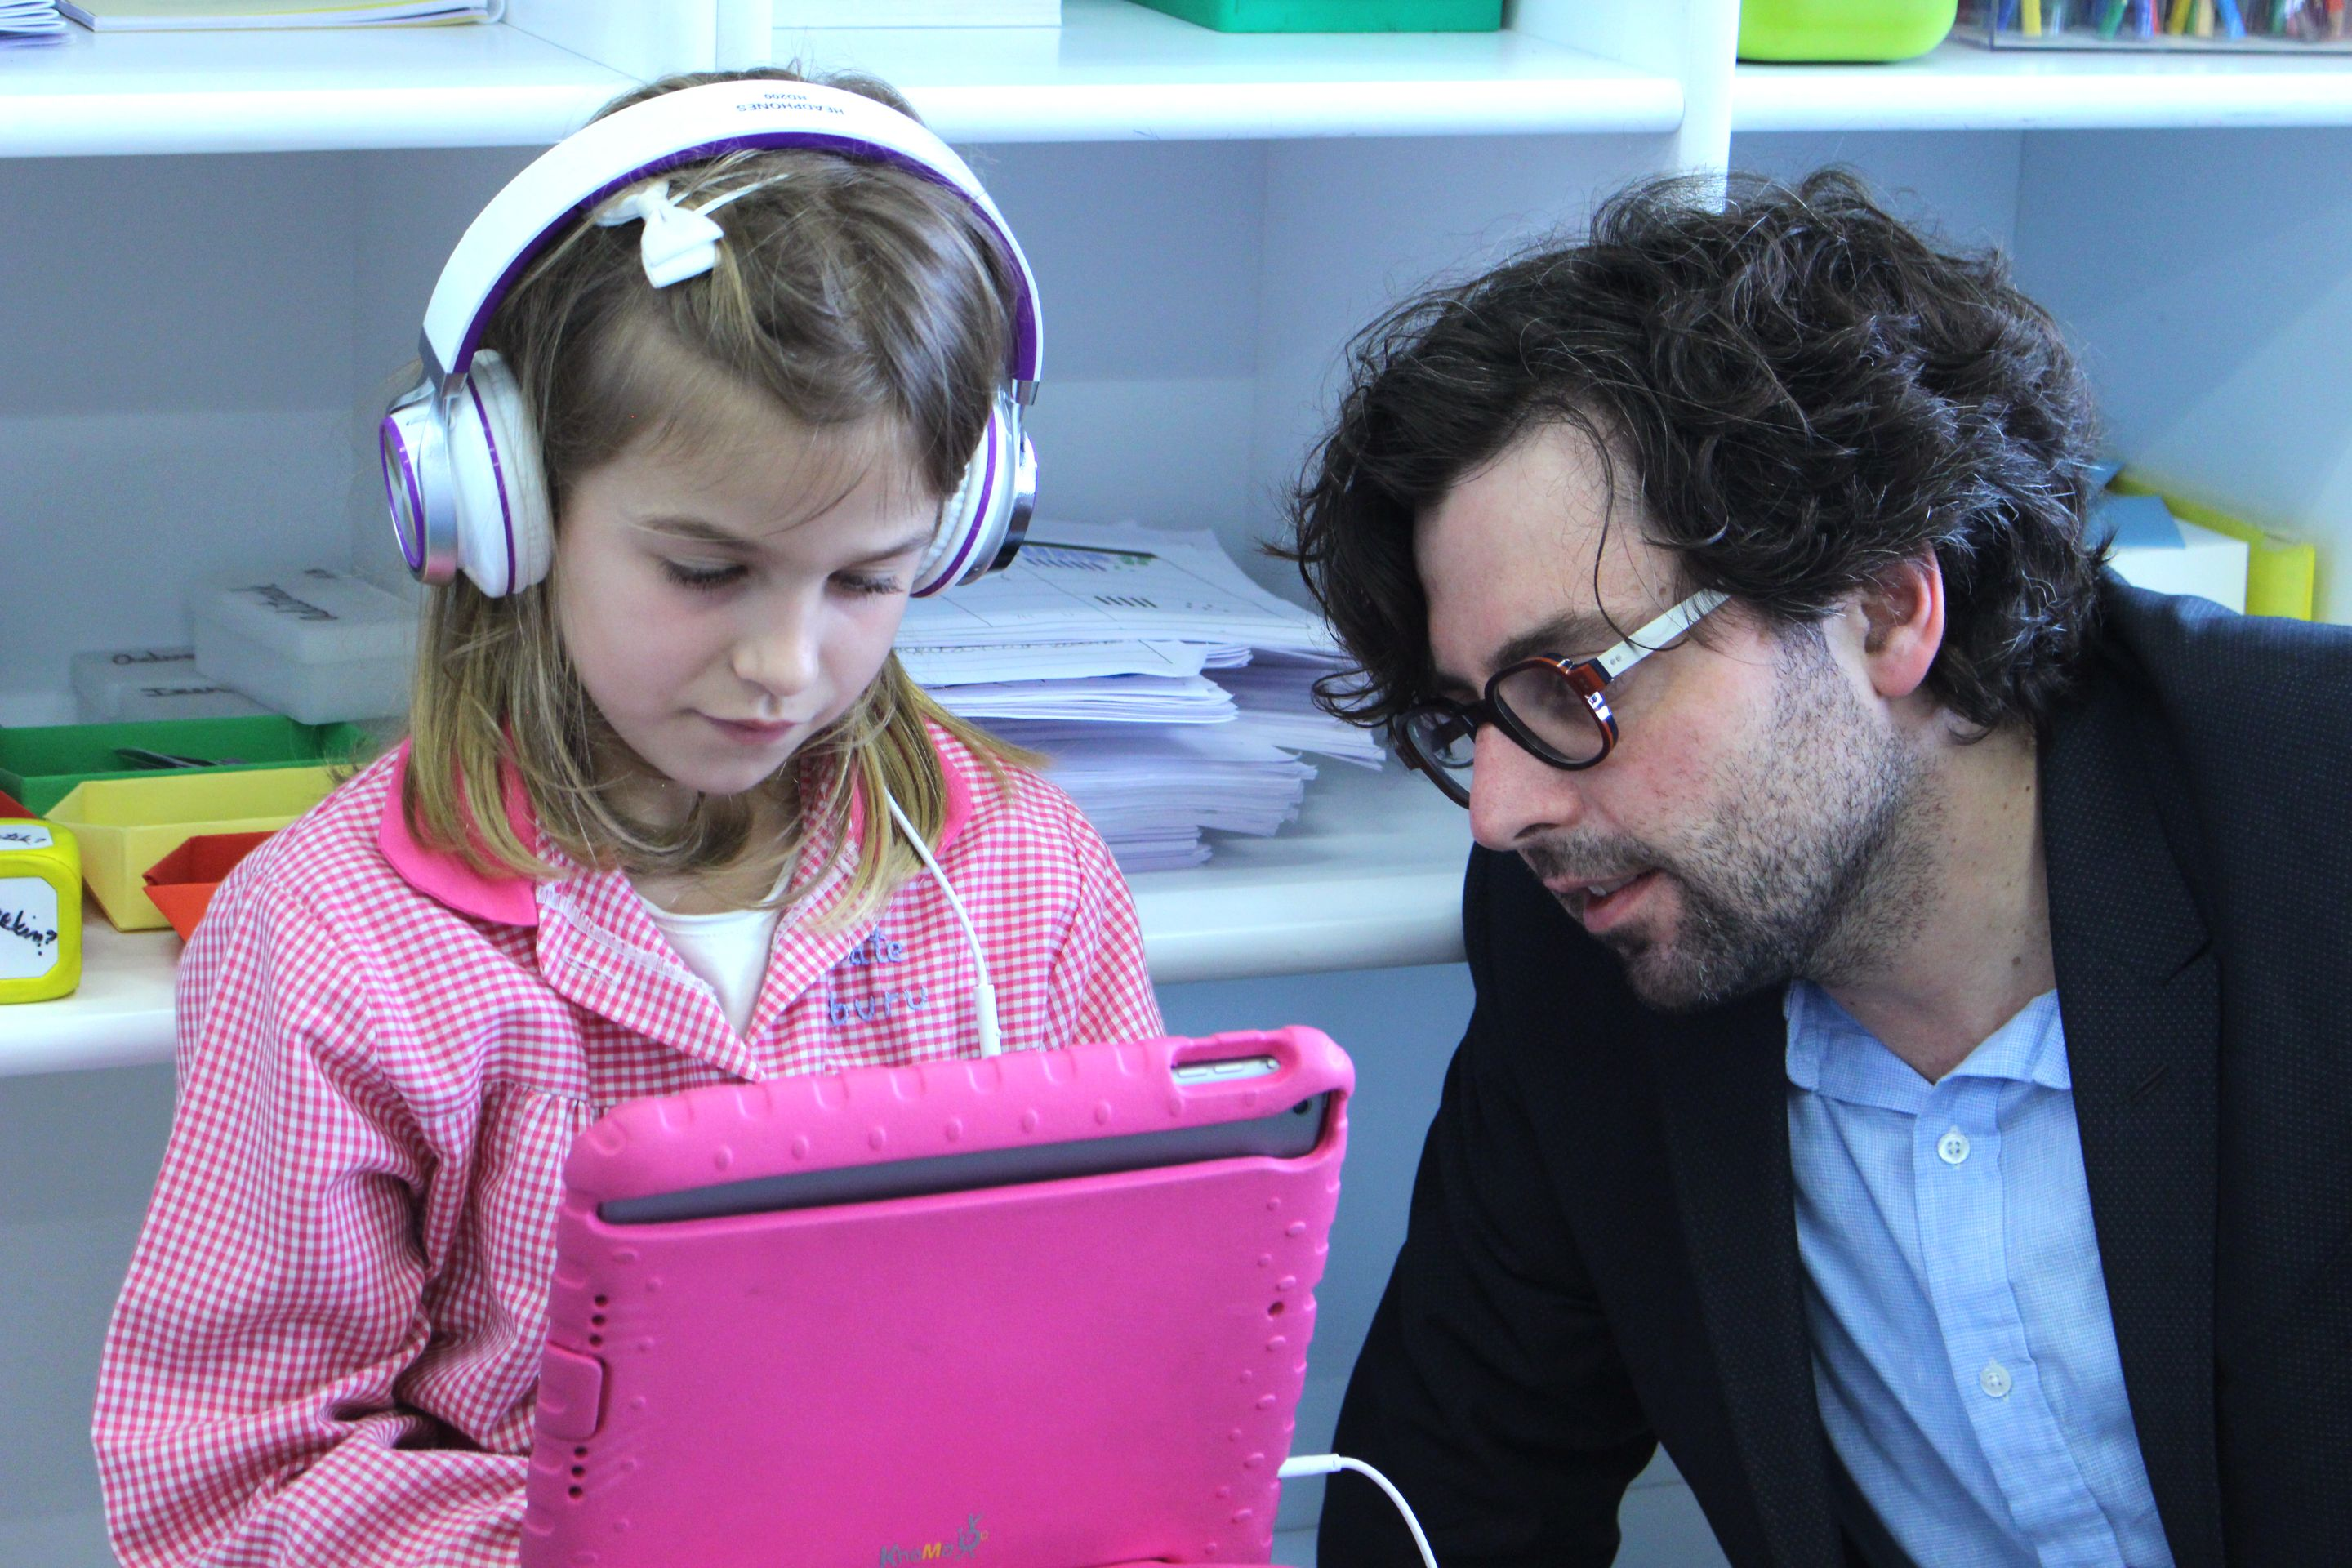 Jordan Shapiro sitting with an elementary student who is using a tablet and wearing headphones